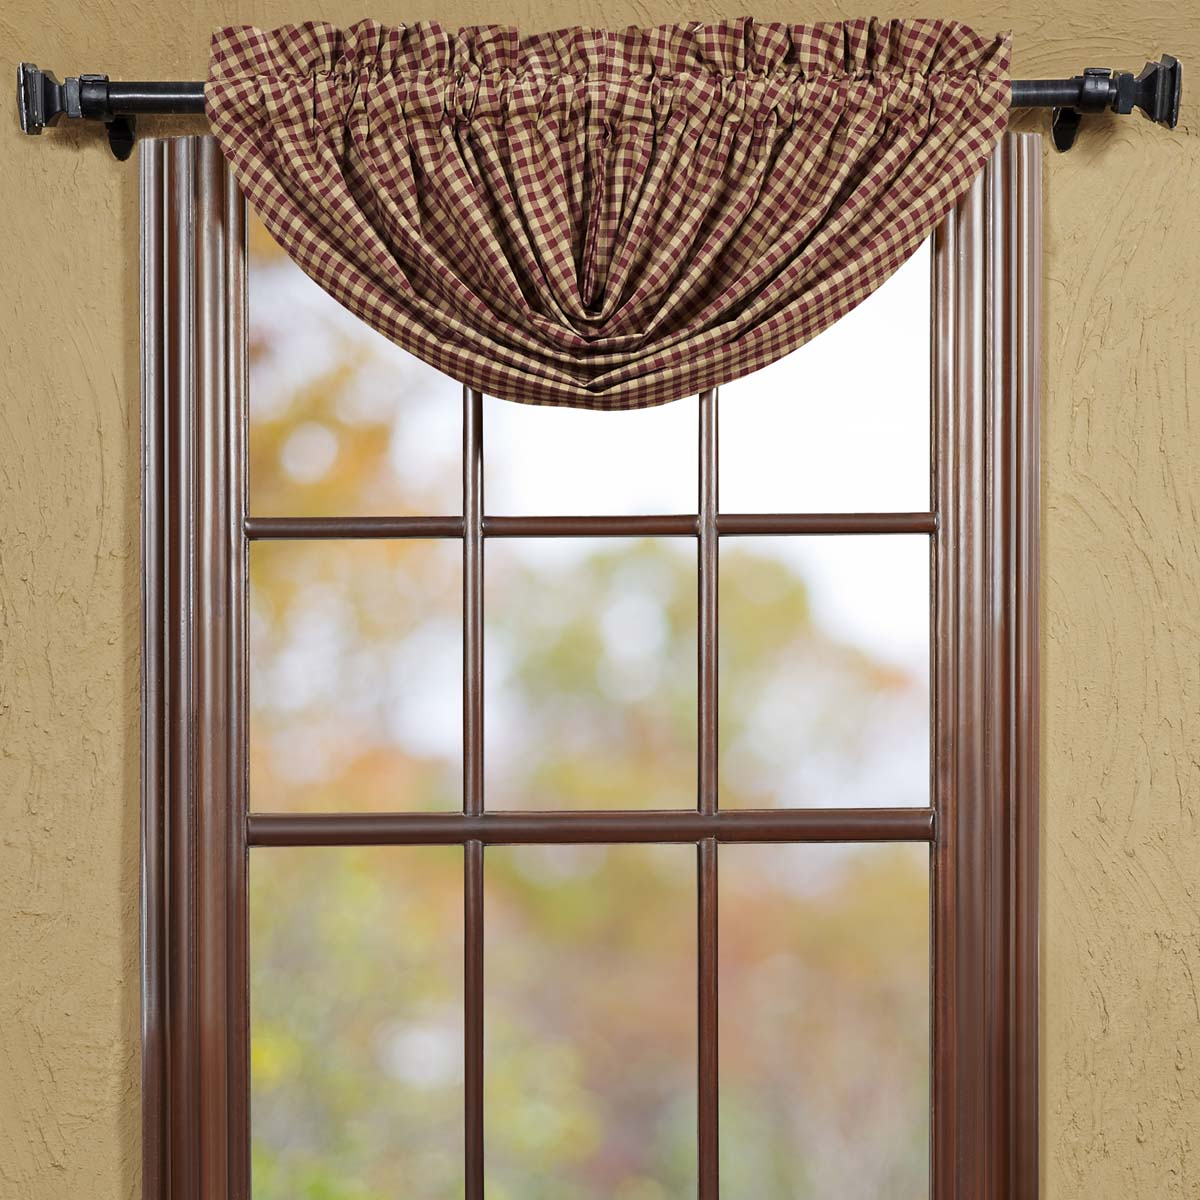 Most Recently Released Burgundy Red Primitive Kitchen Curtains Burgundy Check Rod Pocket Cotton Check Balloon Valance Within Primitive Kitchen Curtains (View 16 of 20)